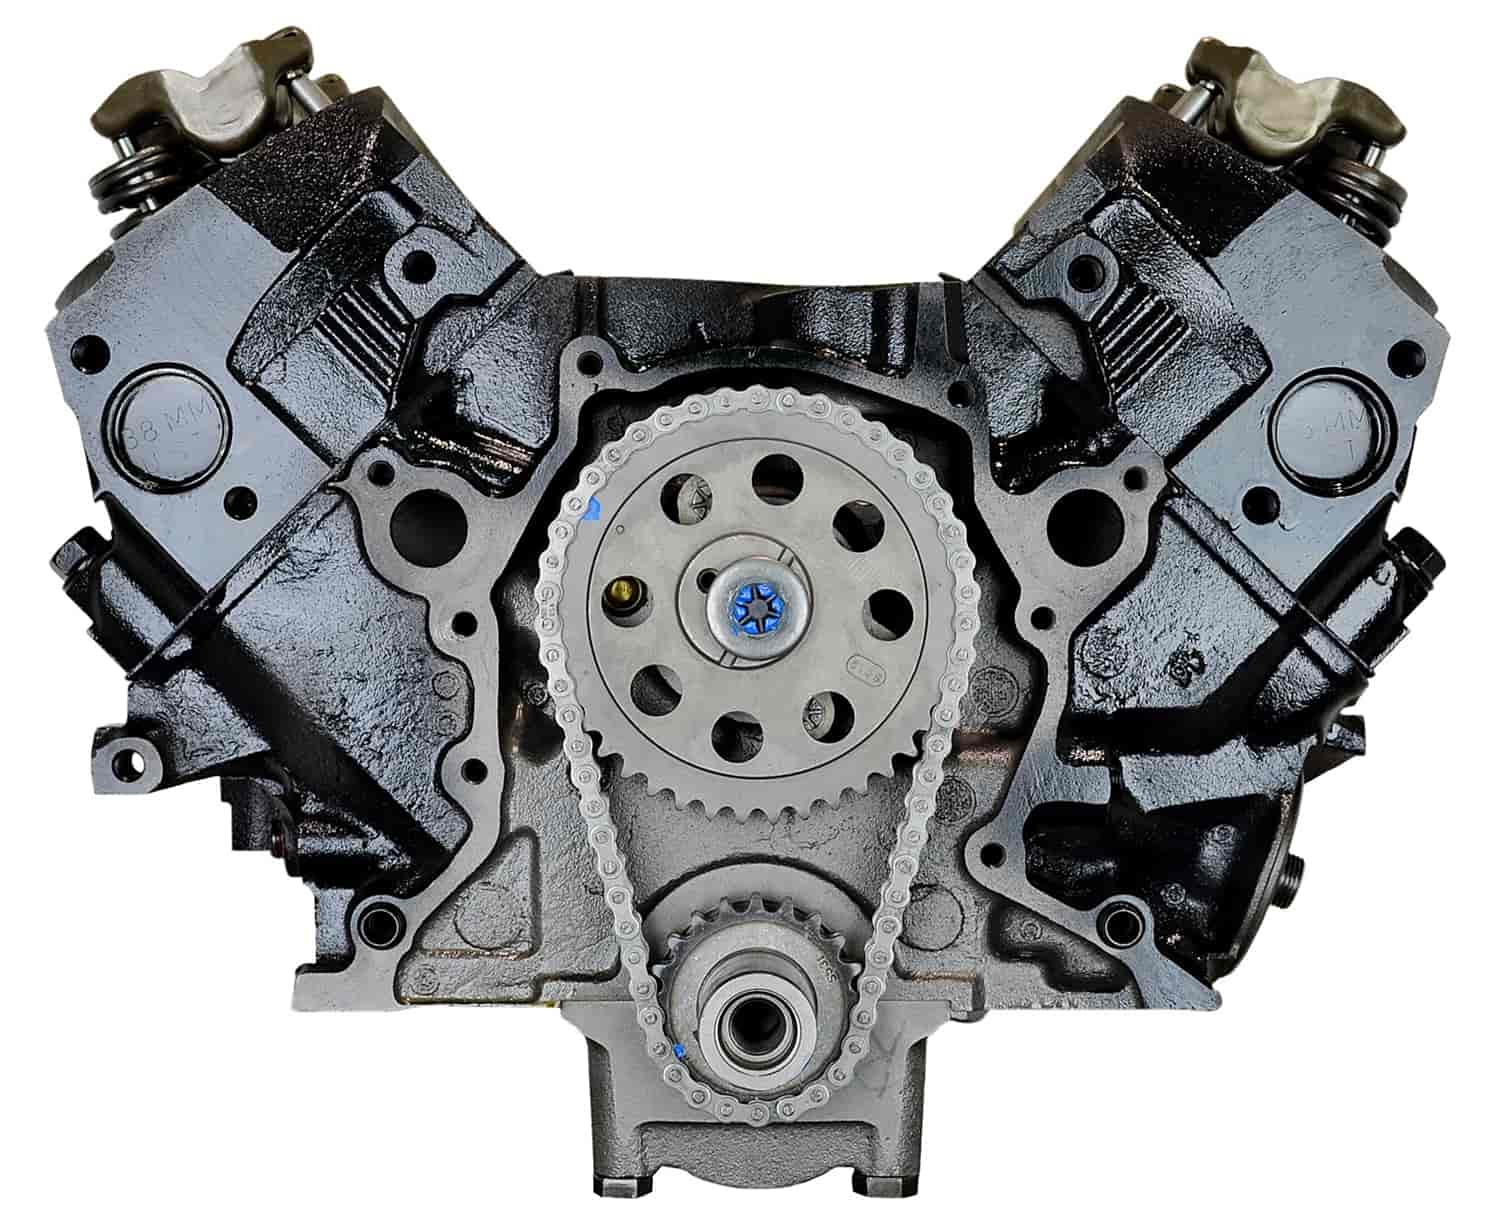 ATK Engines Remanufactured Crate Engine for 1996-1997 Ford Explorer &  Mercury Mountaineer with 302ci/5.0L V8